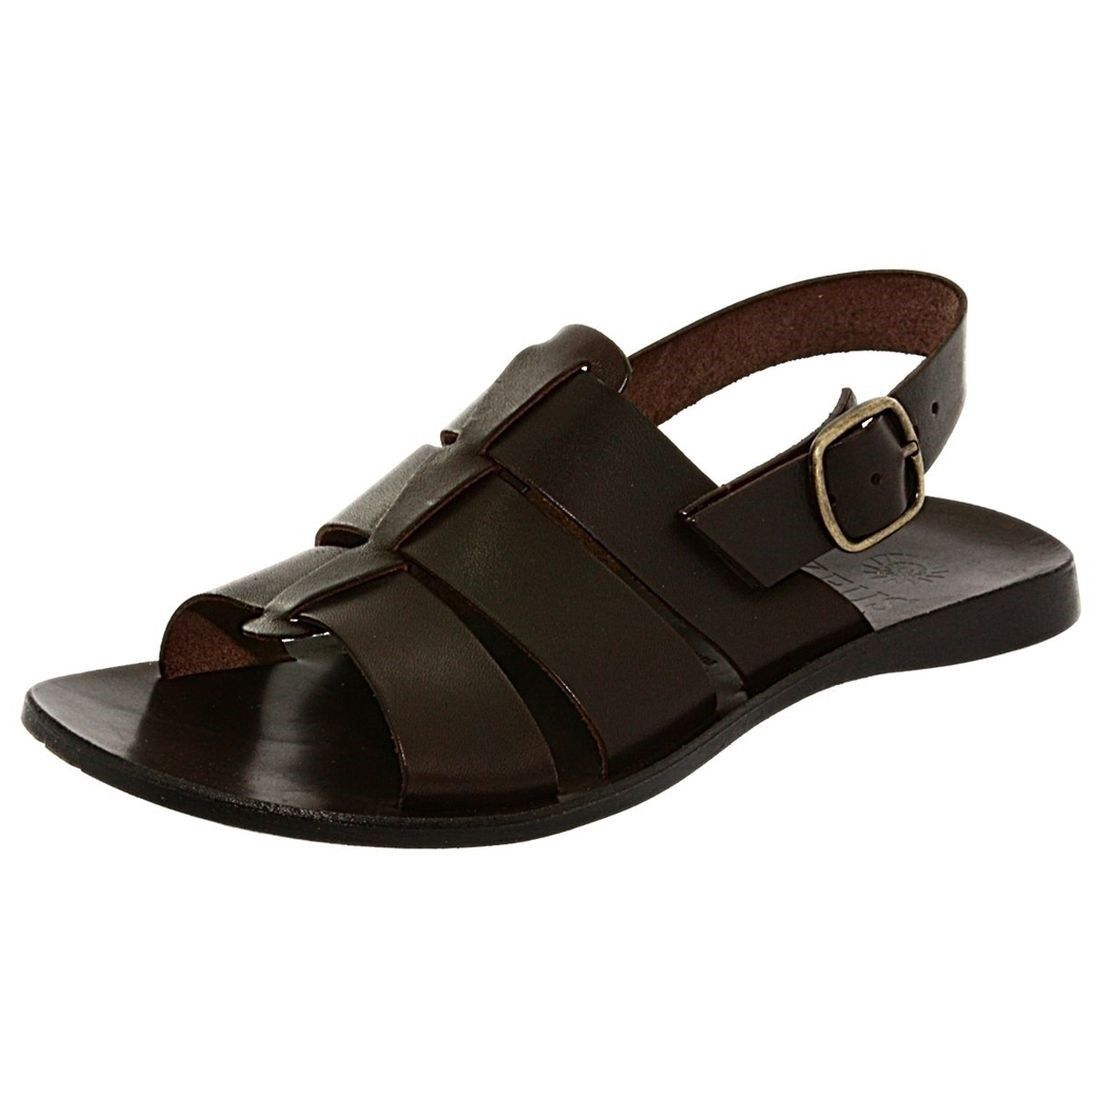 4012 homme zeus 4012 sandales chics homme cuir made in